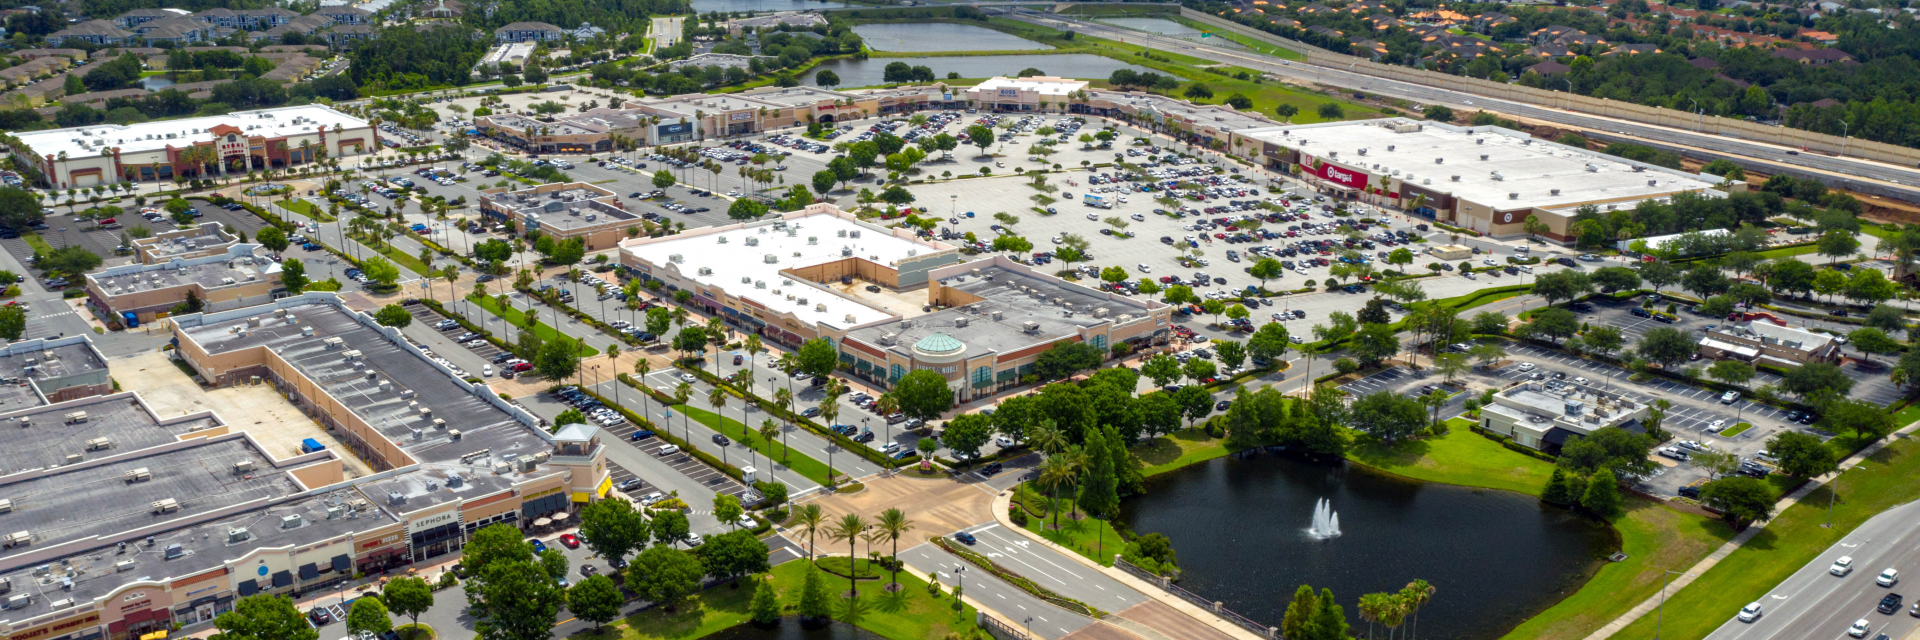 Aerial photo of a busy shopping center on a clear day in Orlando, Florida.